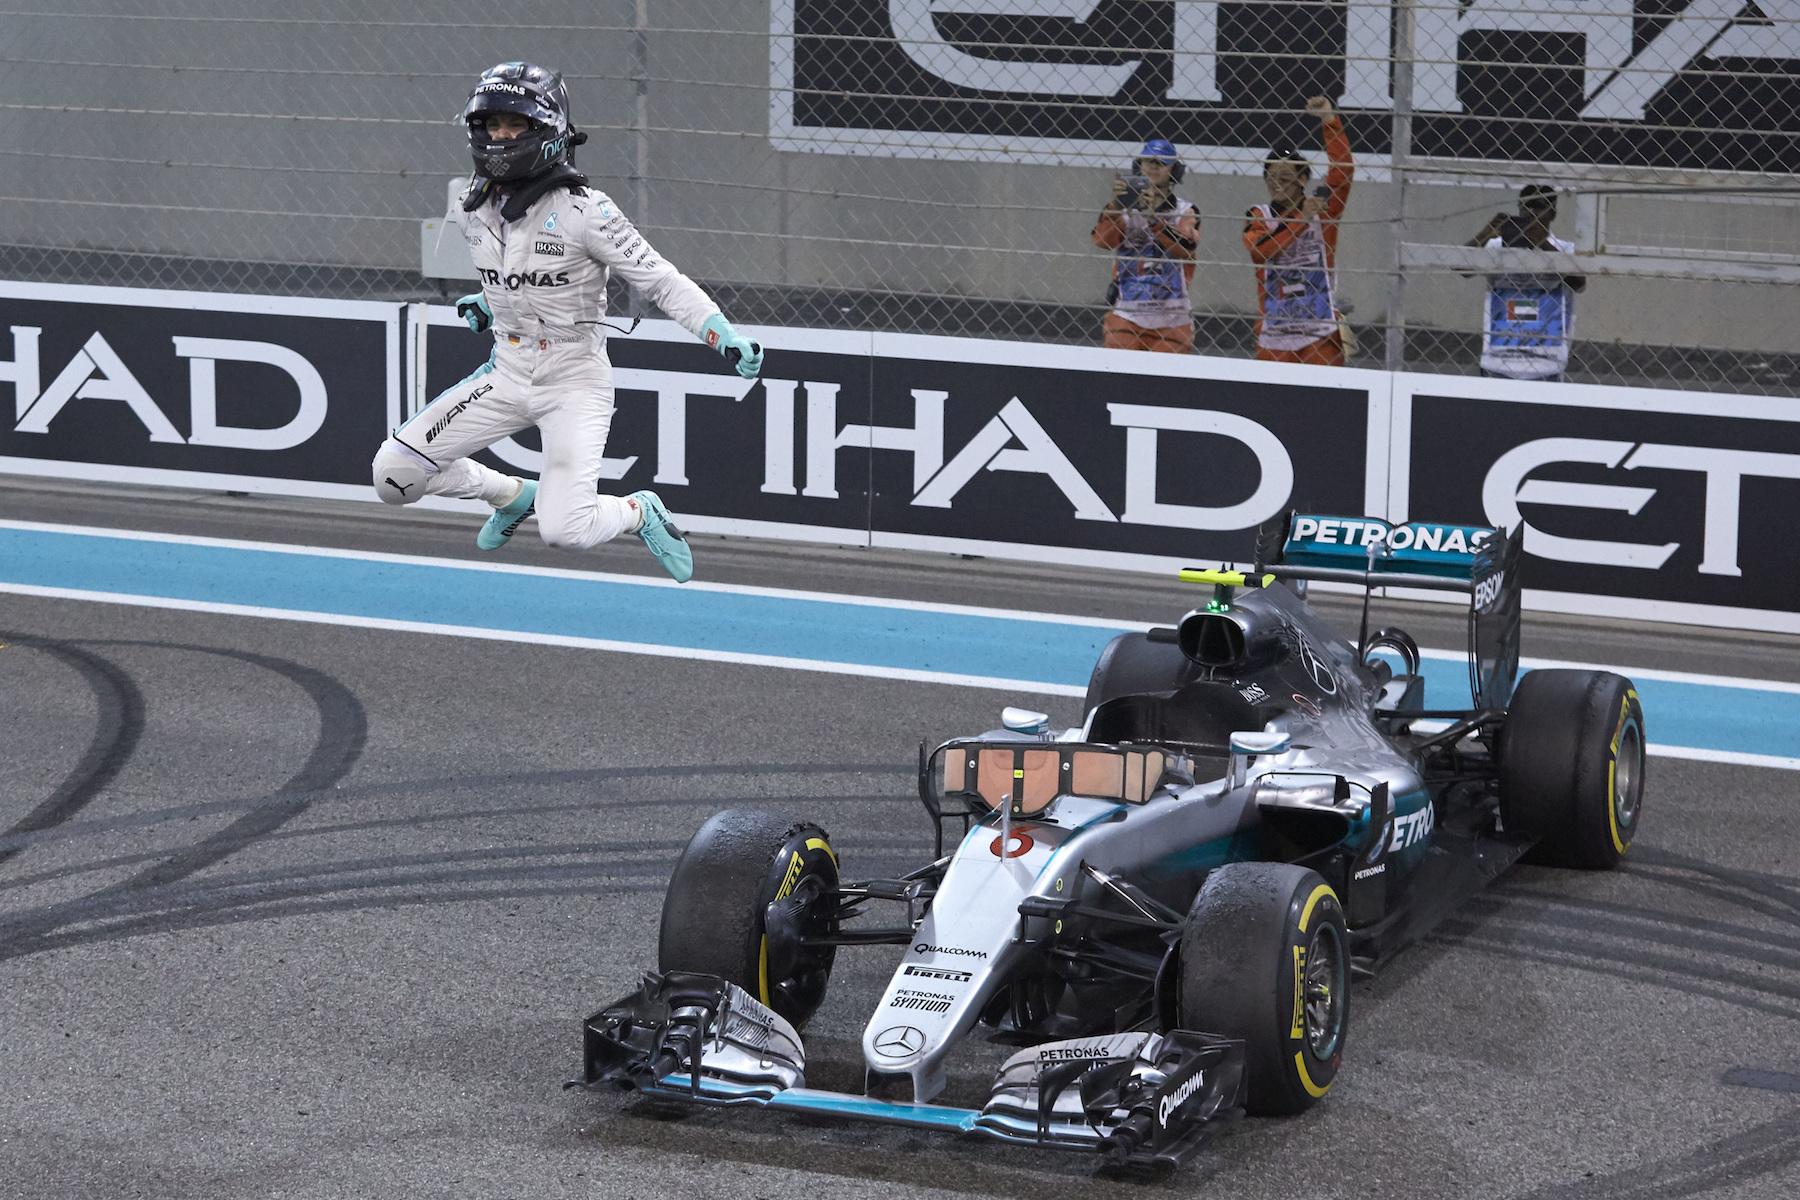 2016 World Drivers' Champion: 🇩🇪 Nico Rosberg